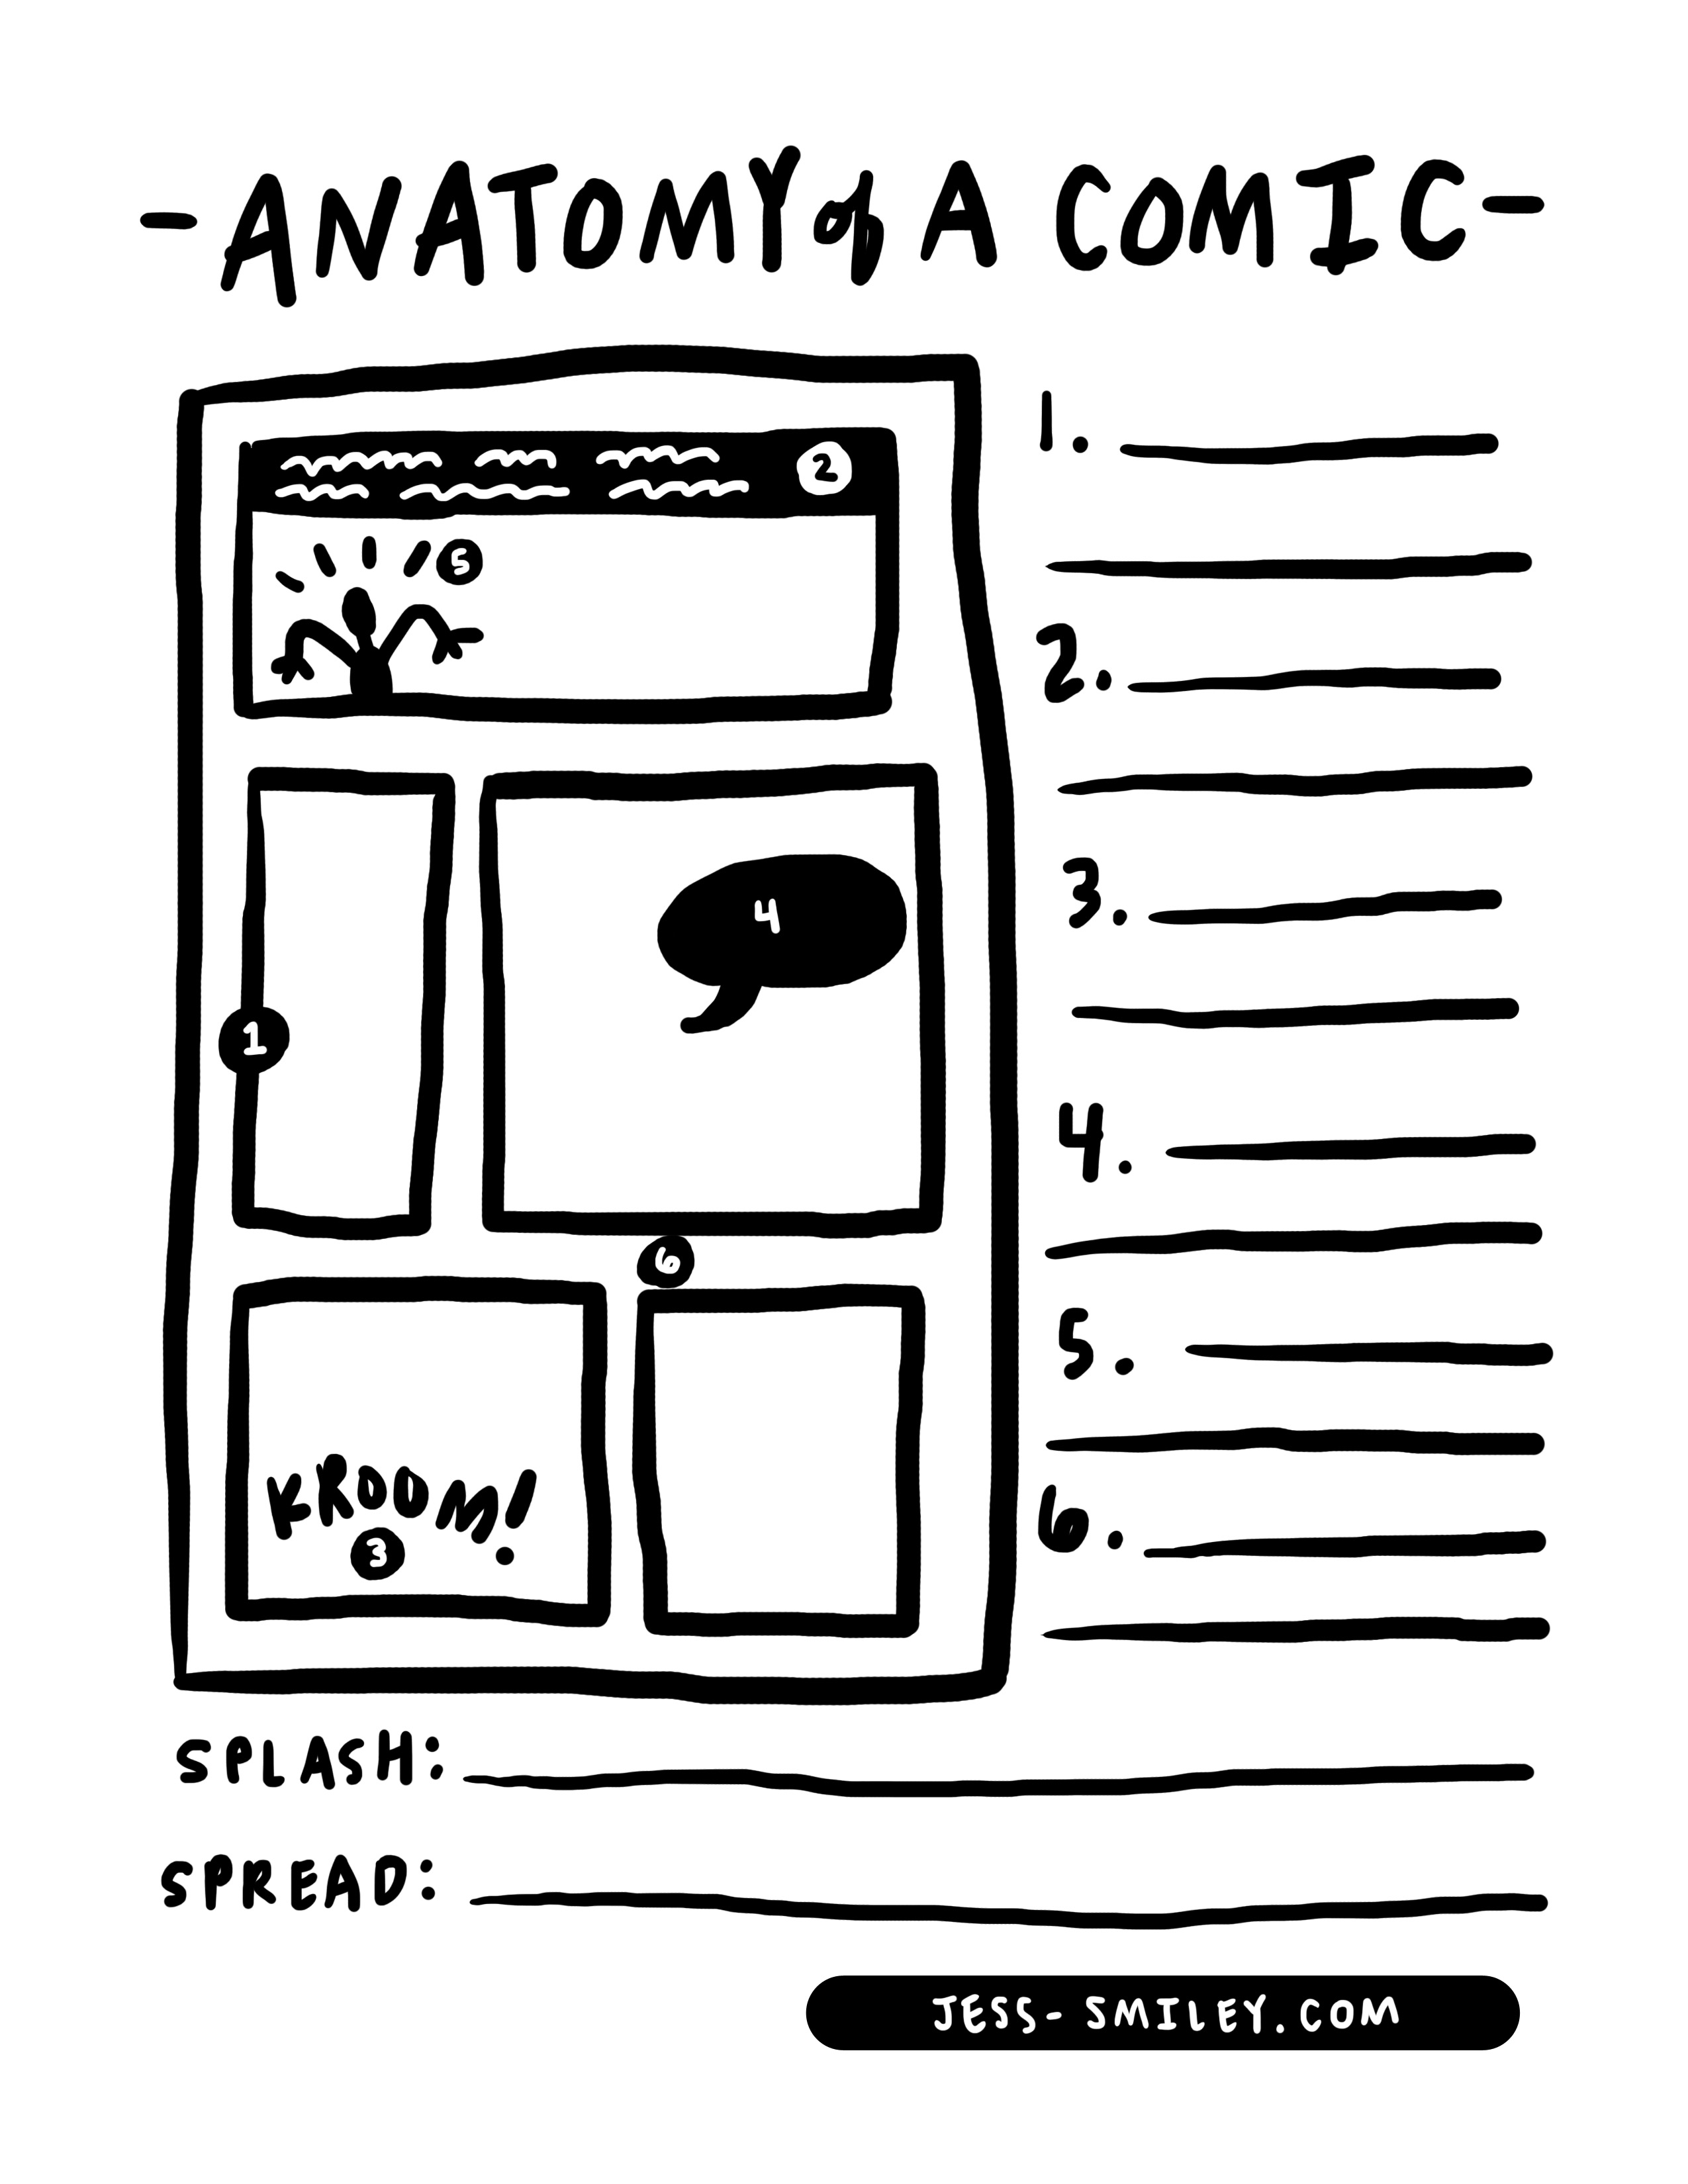 Anatomy Of A Comic Page Jess Smart Smiley The Internet Version